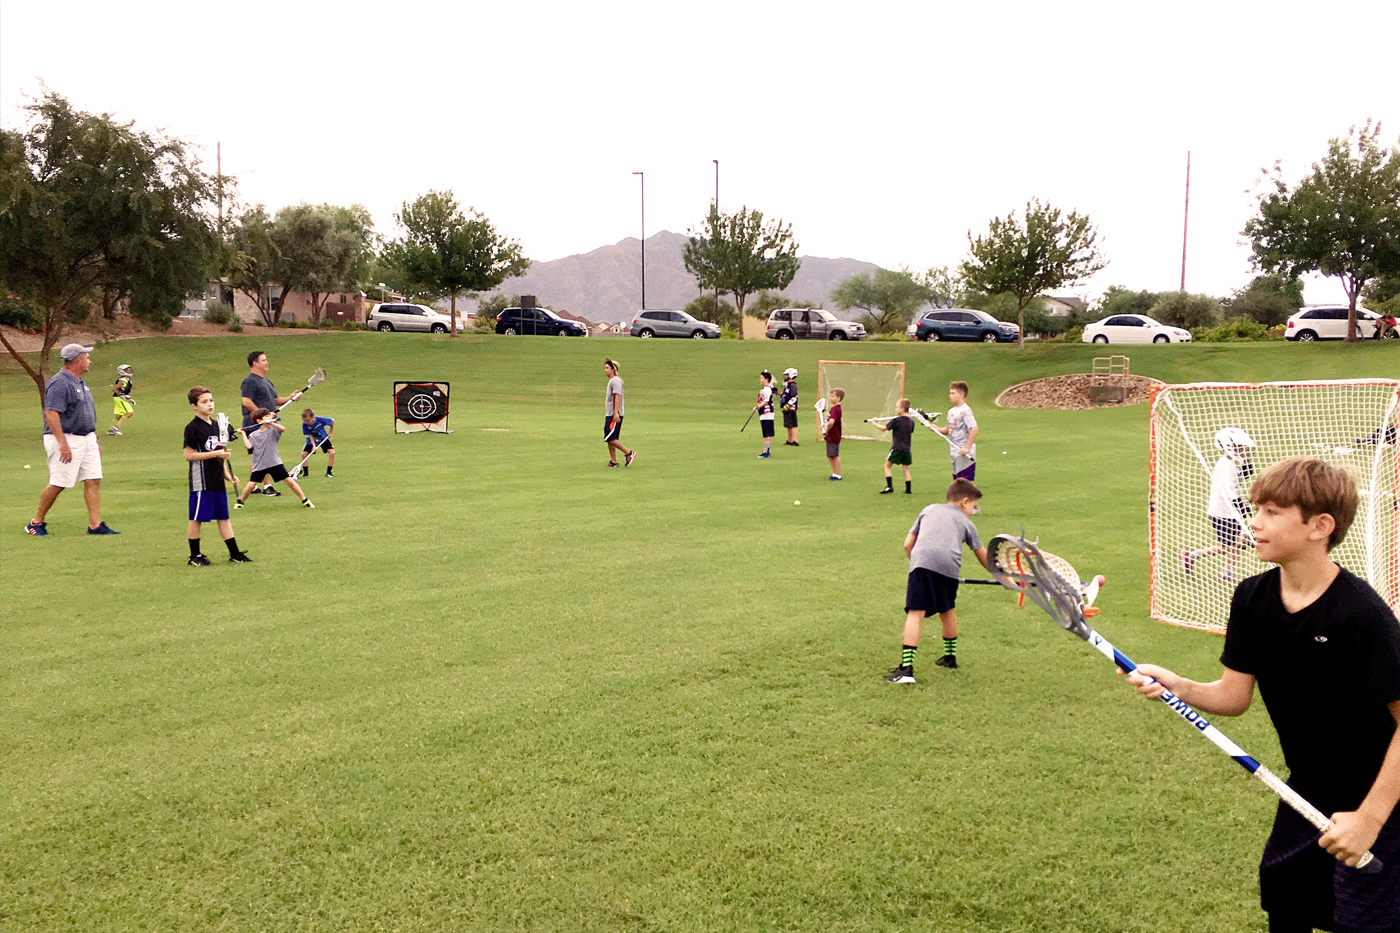 Great Turnout for Chandler's Youth Lacrosse Clinic